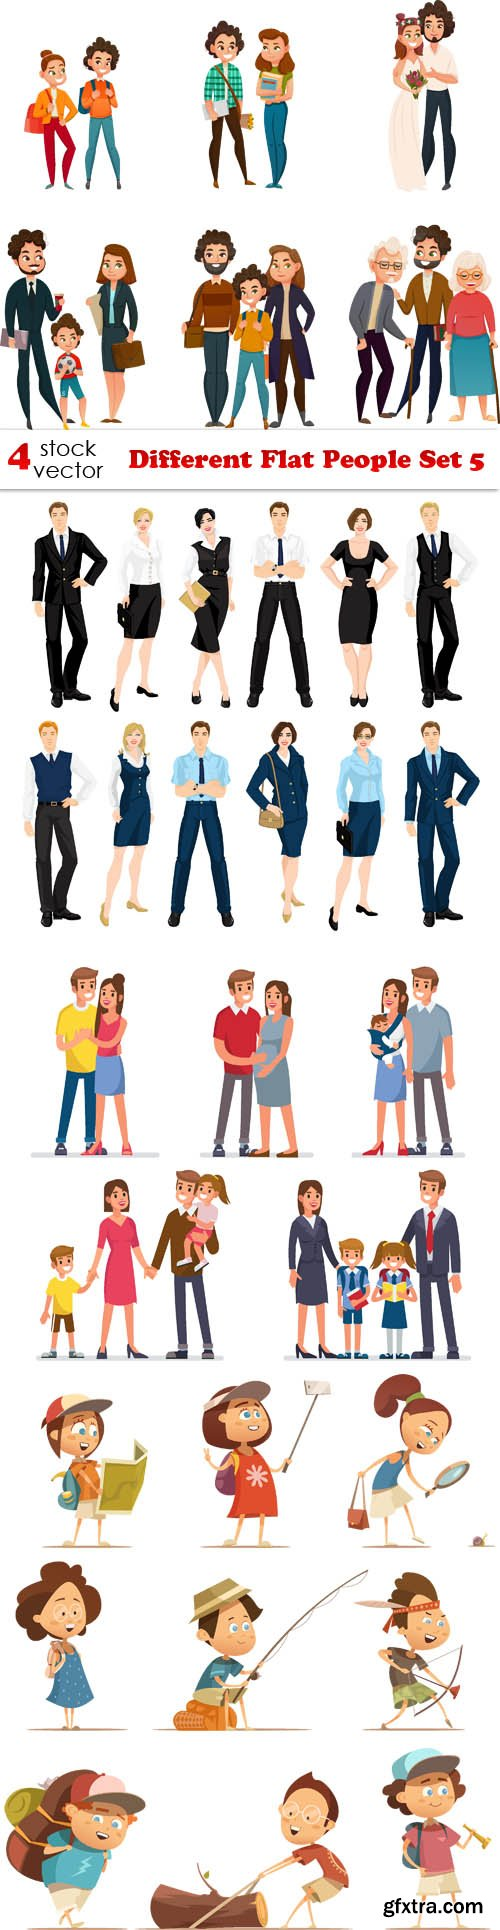 Vectors - Different Flat People Set 5